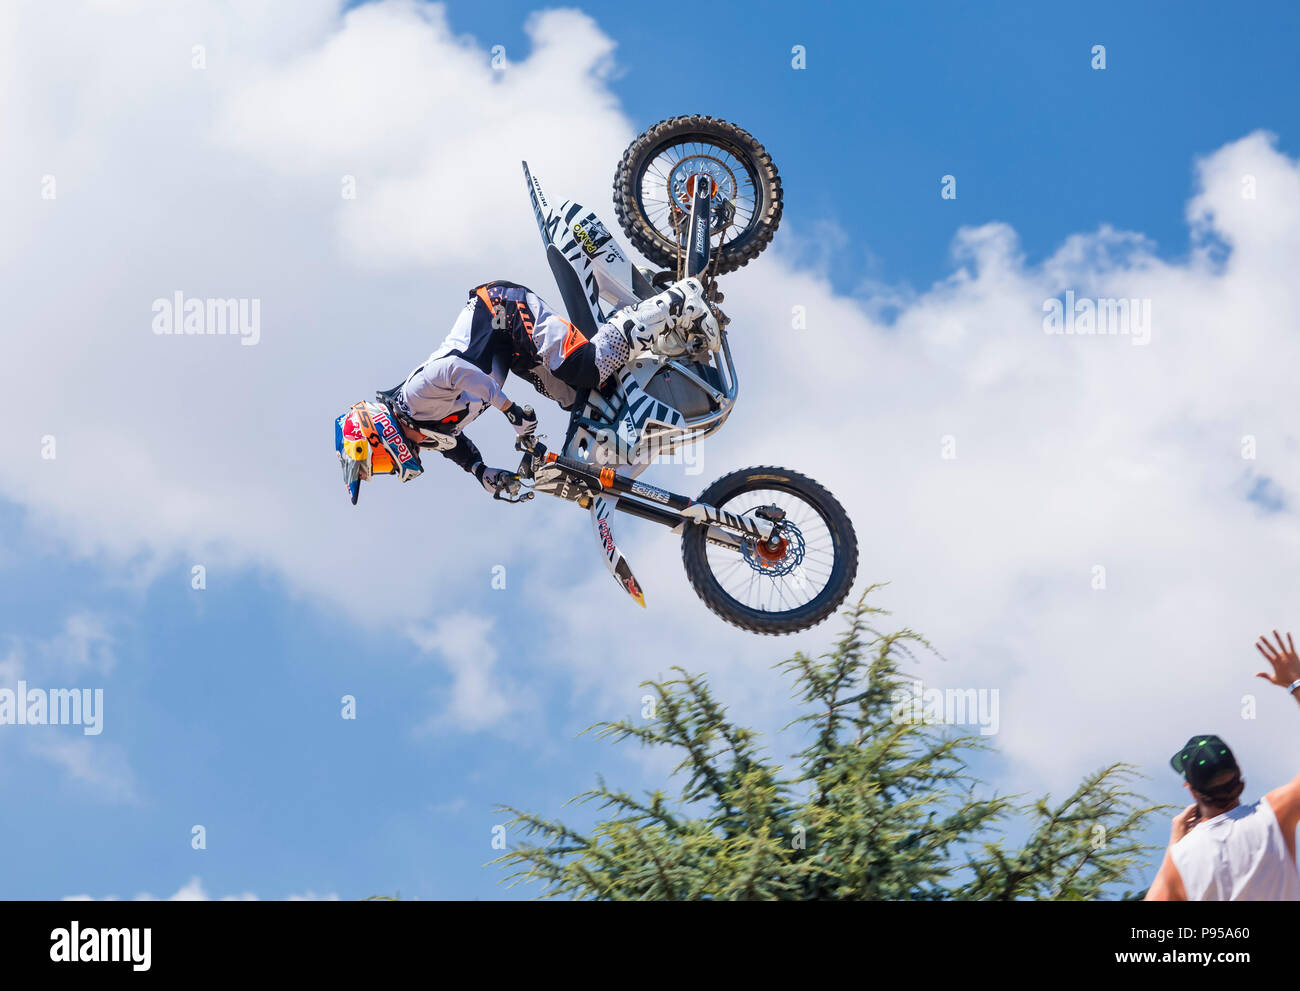 Goodwood, West Sussex, UK, 14th July 2018. Freestyle Motocross at the Gas arena Goodwood Festival of Speed. © Tony Watson/Alamy Live News - Stock Image